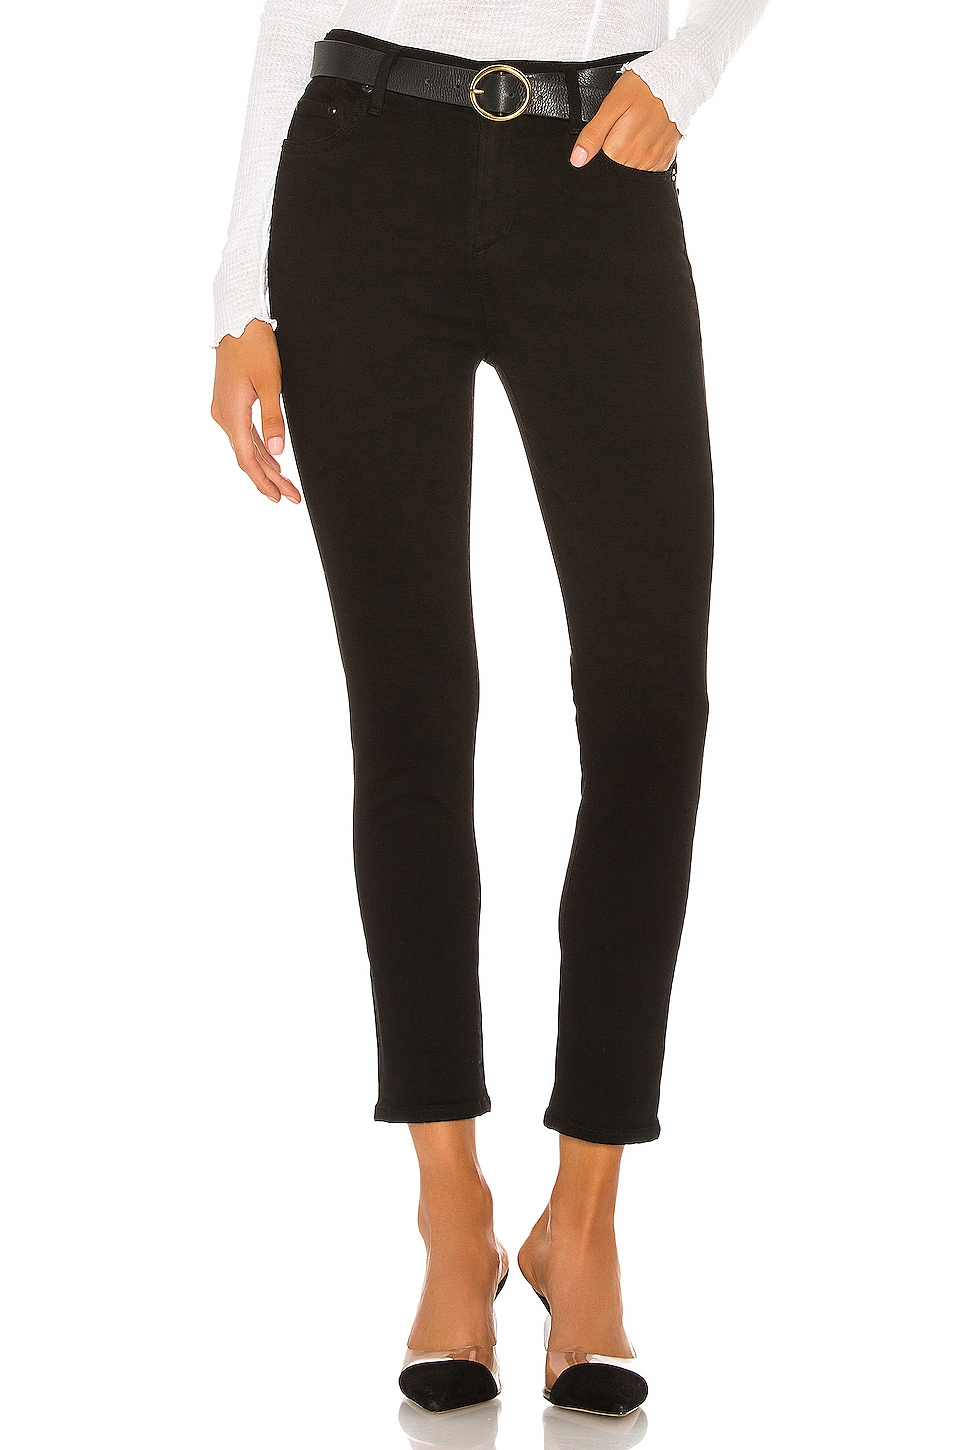 Citizens of Humanity Rocket Crop Mid Rise Skinny in Plush Black